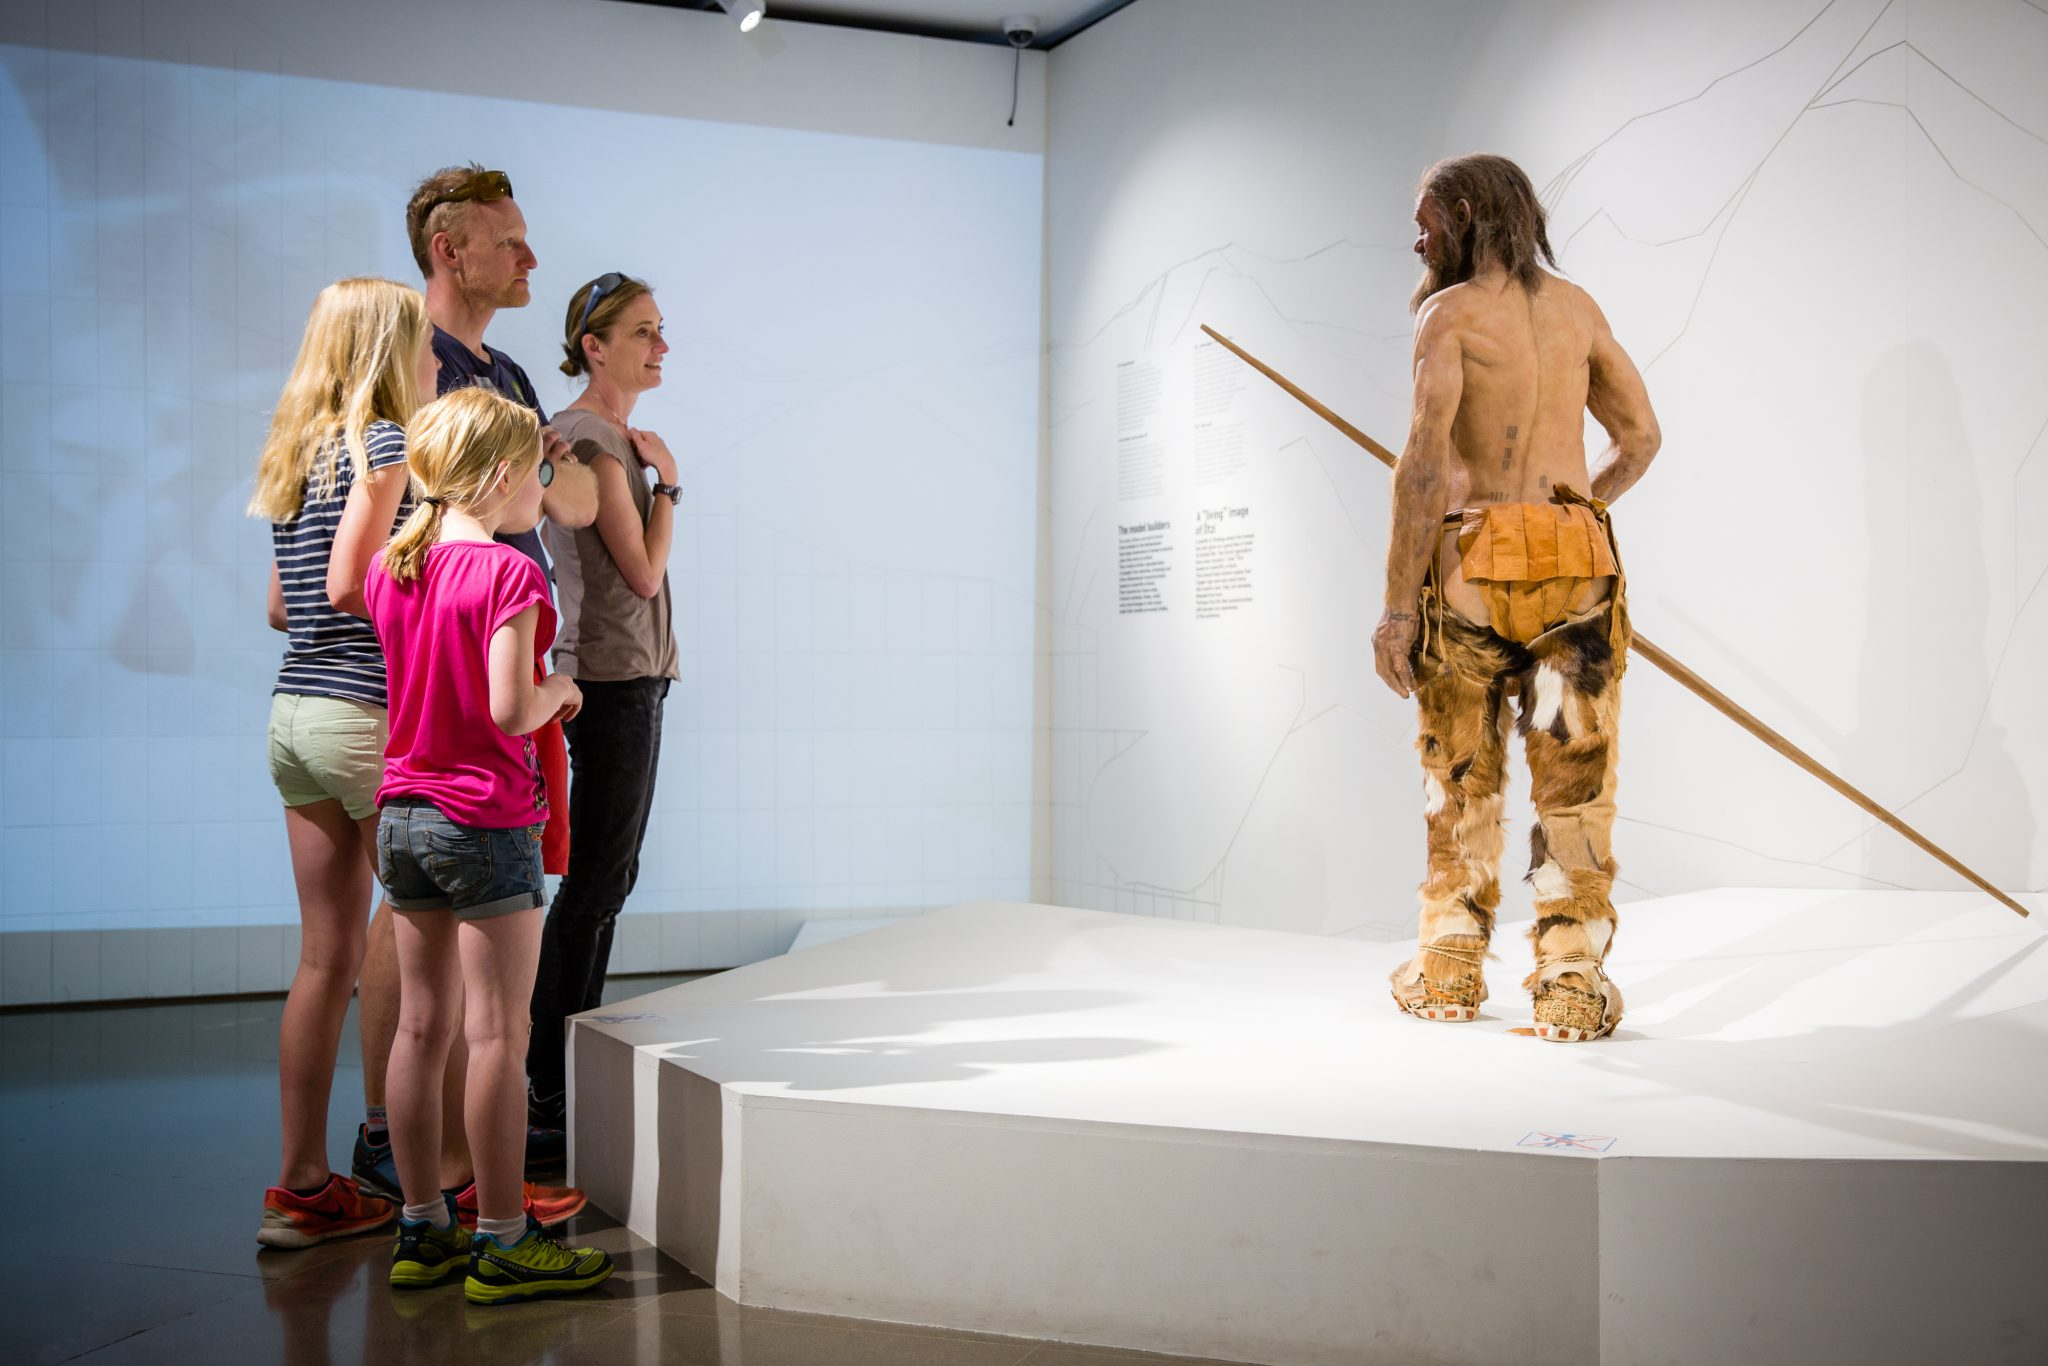 Visit Ötzi in the South Tyrolean Museum of Archaeology in Bolzano